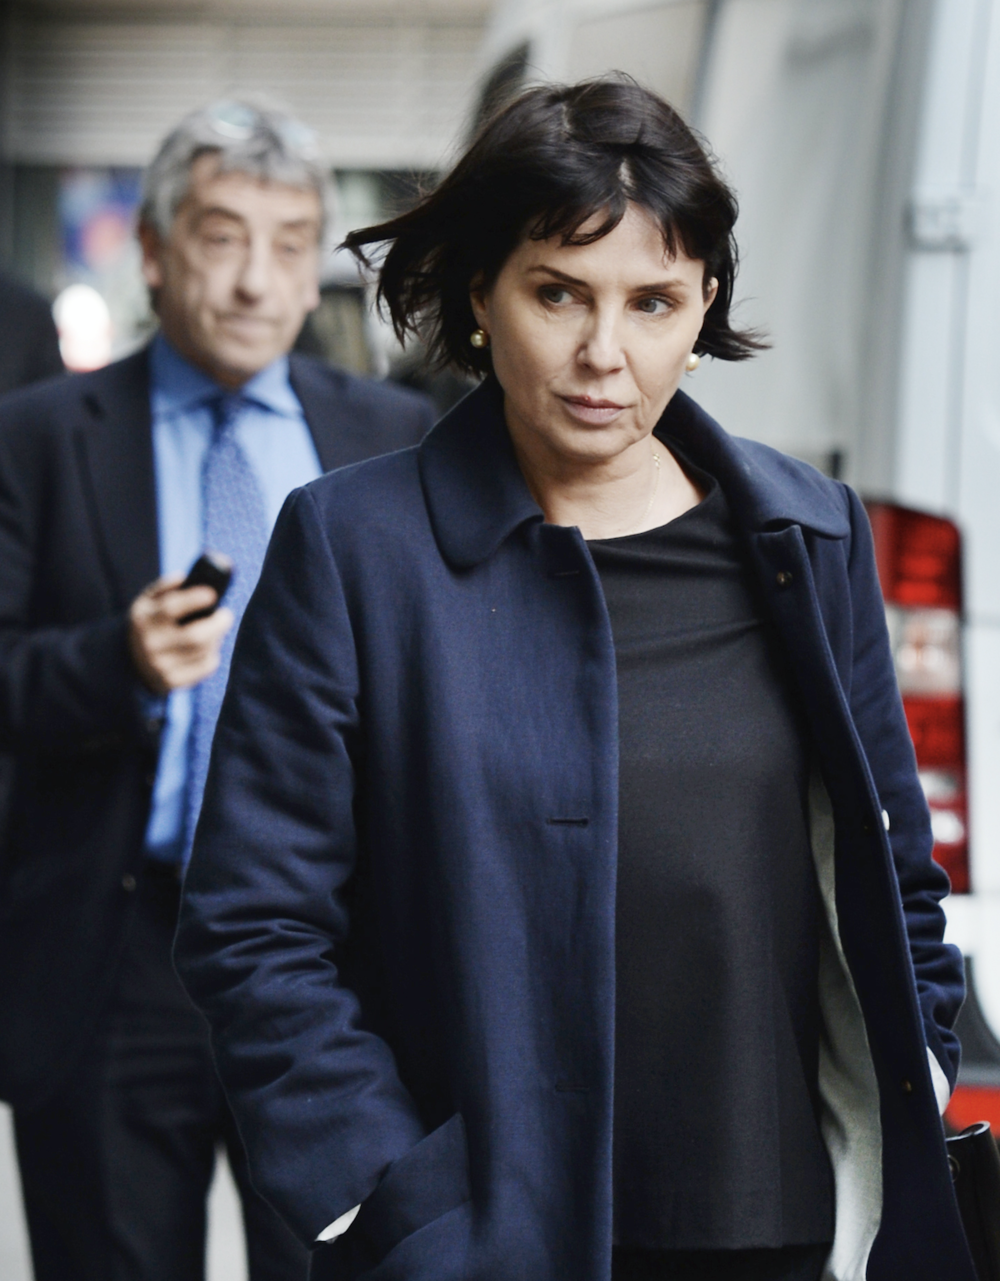 Award: Sadie Frost outside the High Court in London in 2015 after being awarded more than £260,000 damages against Mirror Group Newspapers (c) PA